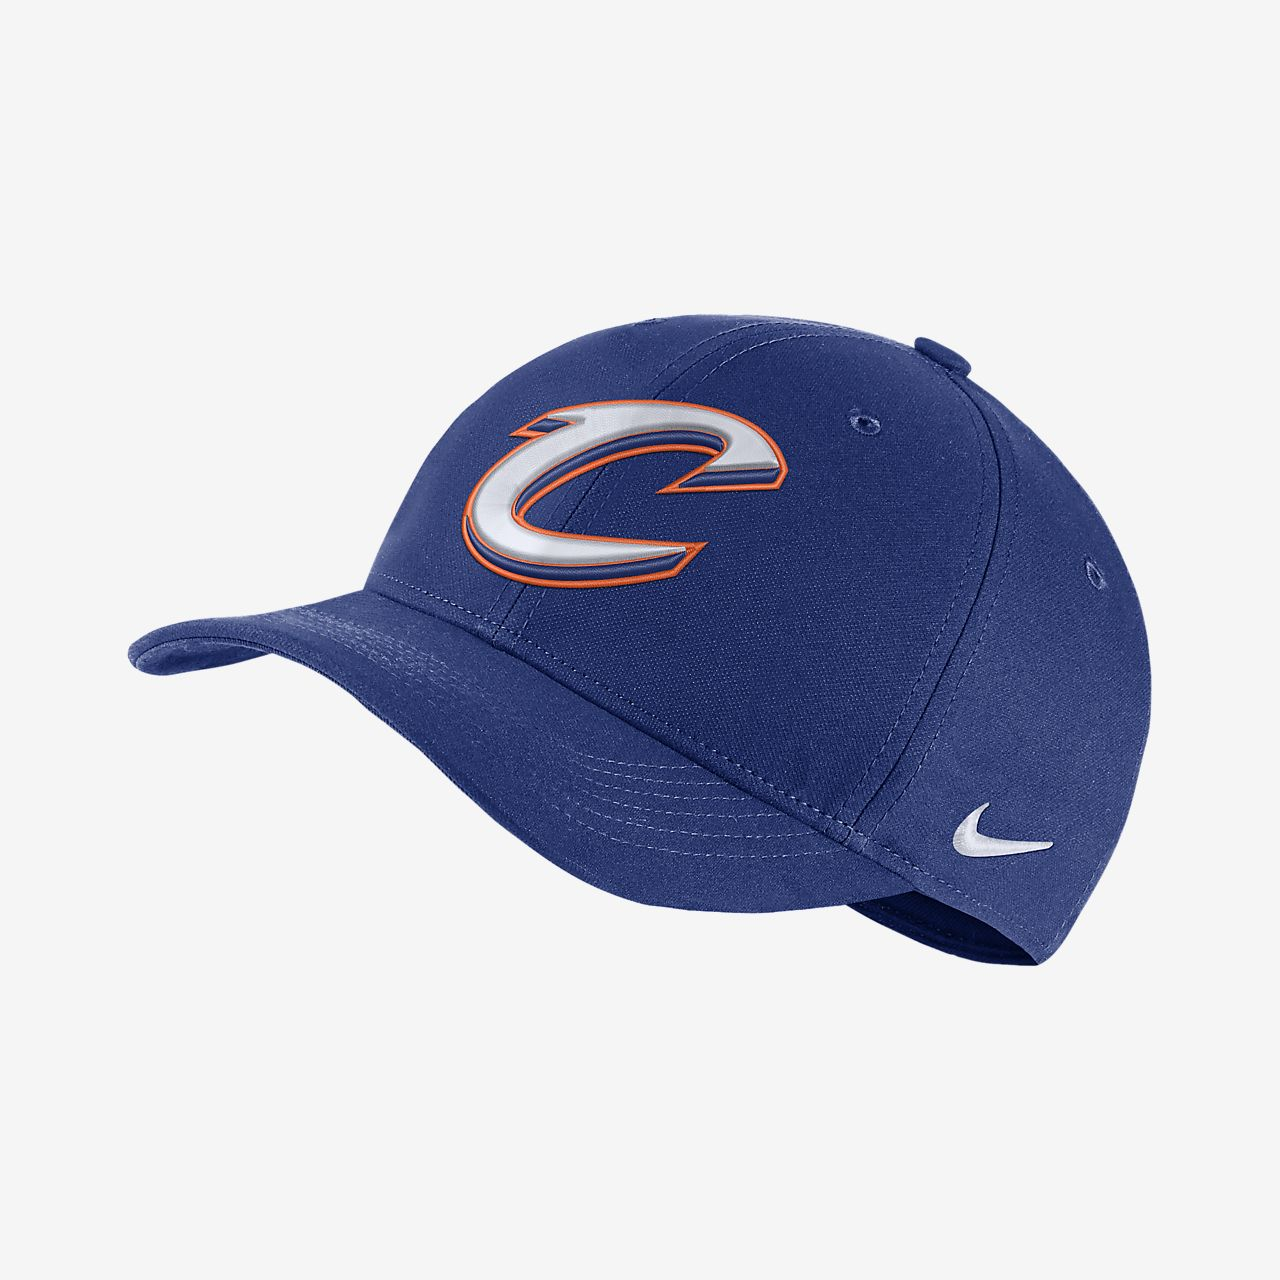 Cleveland Cavaliers City Edition Nike AeroBill Classic99 NBA-caps